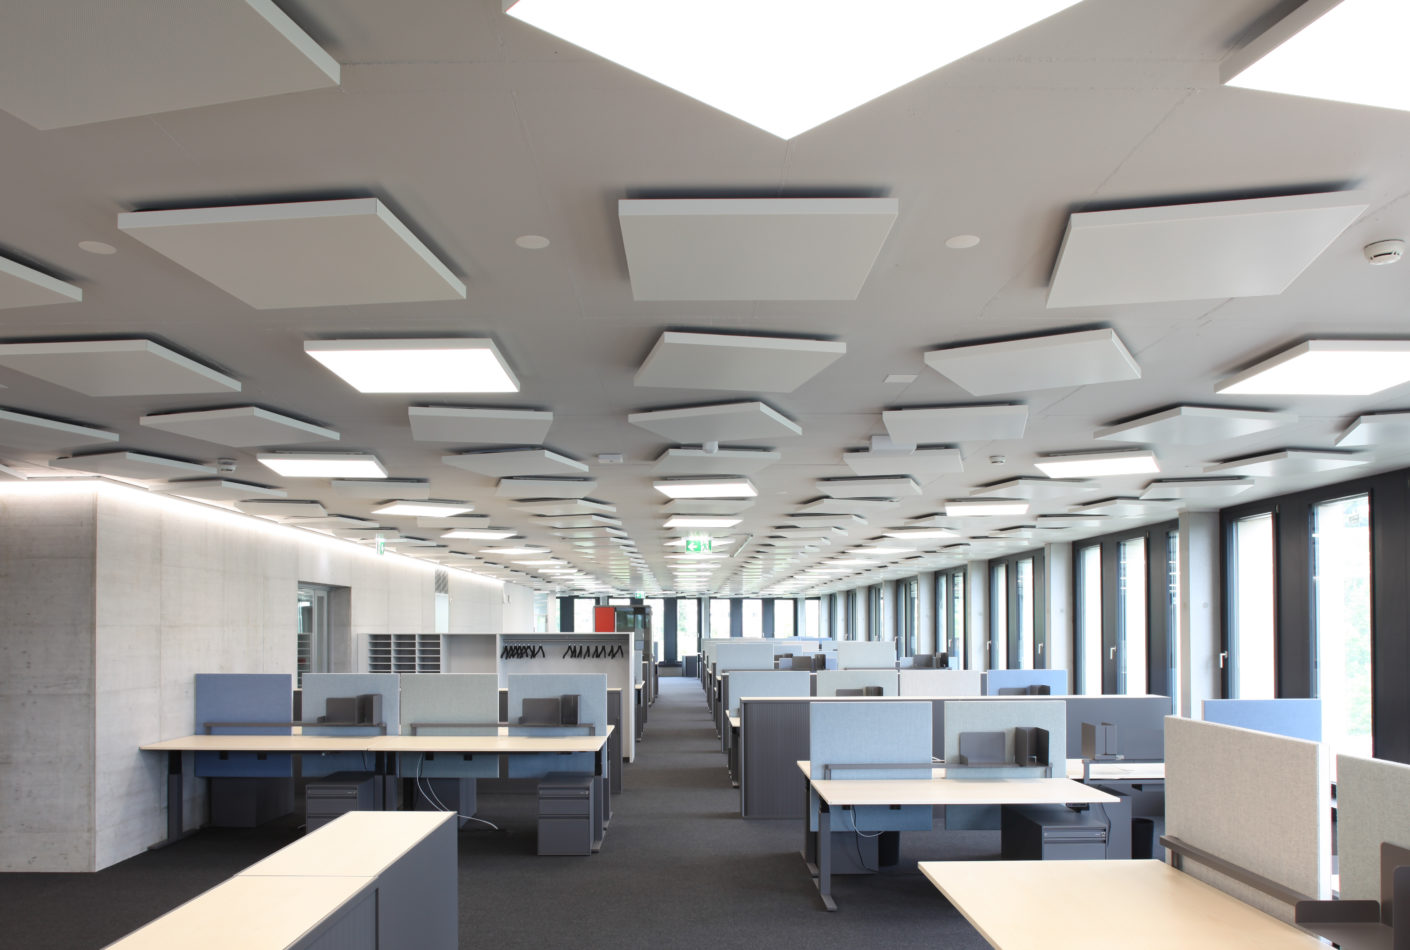 """In the offices, the square """"Lumeo®-Q"""" illuminated surfaces ensure even illumination and a pleasant ambient climate thanks to its thermal conductivity."""